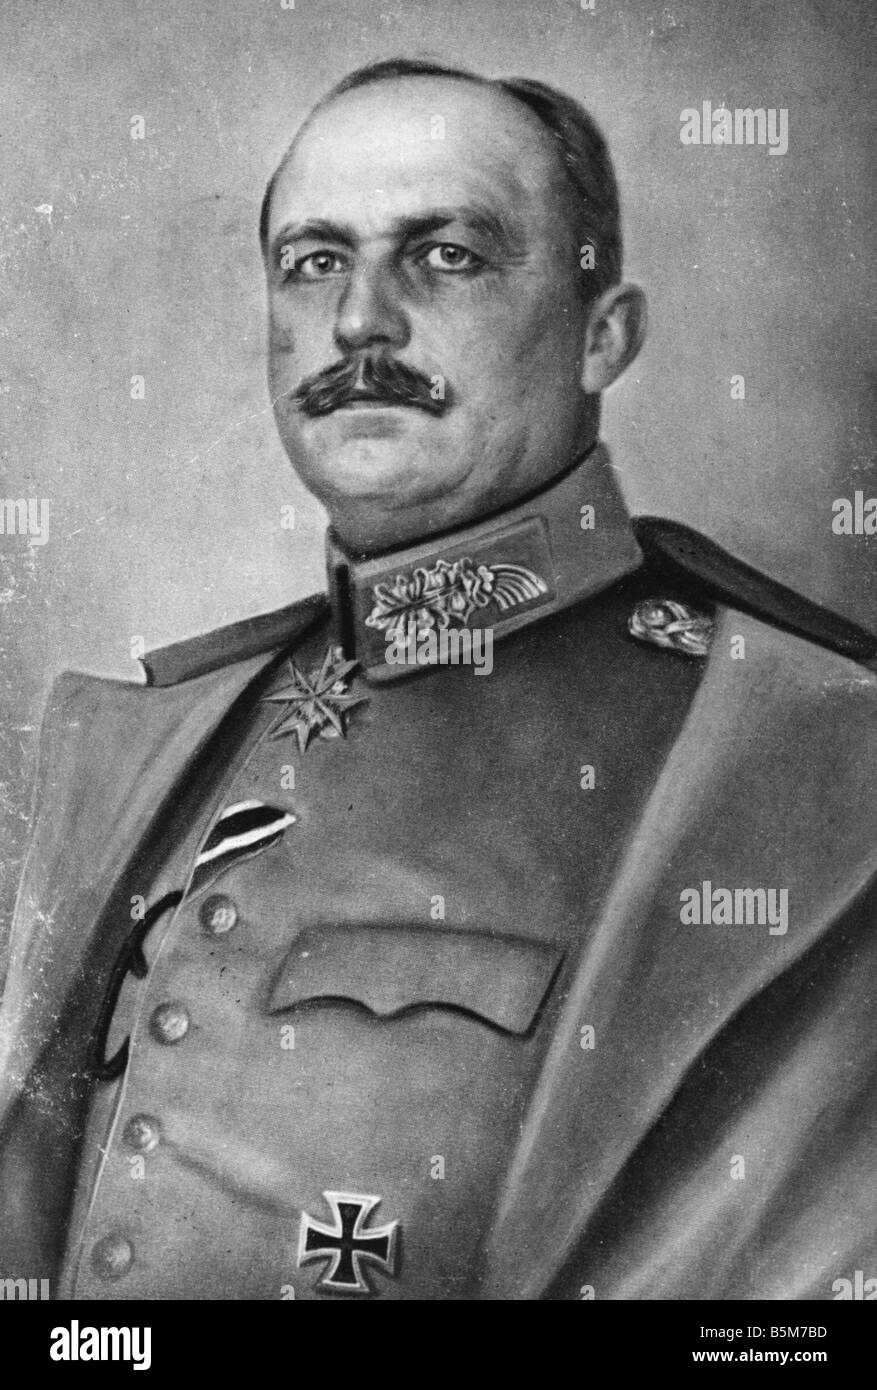 1 L67 A1916 E Ludendorff Colour lithograph 1916 Ludendorff Erich Prussian General as of 1916 1st quartermaster general - Stock Image